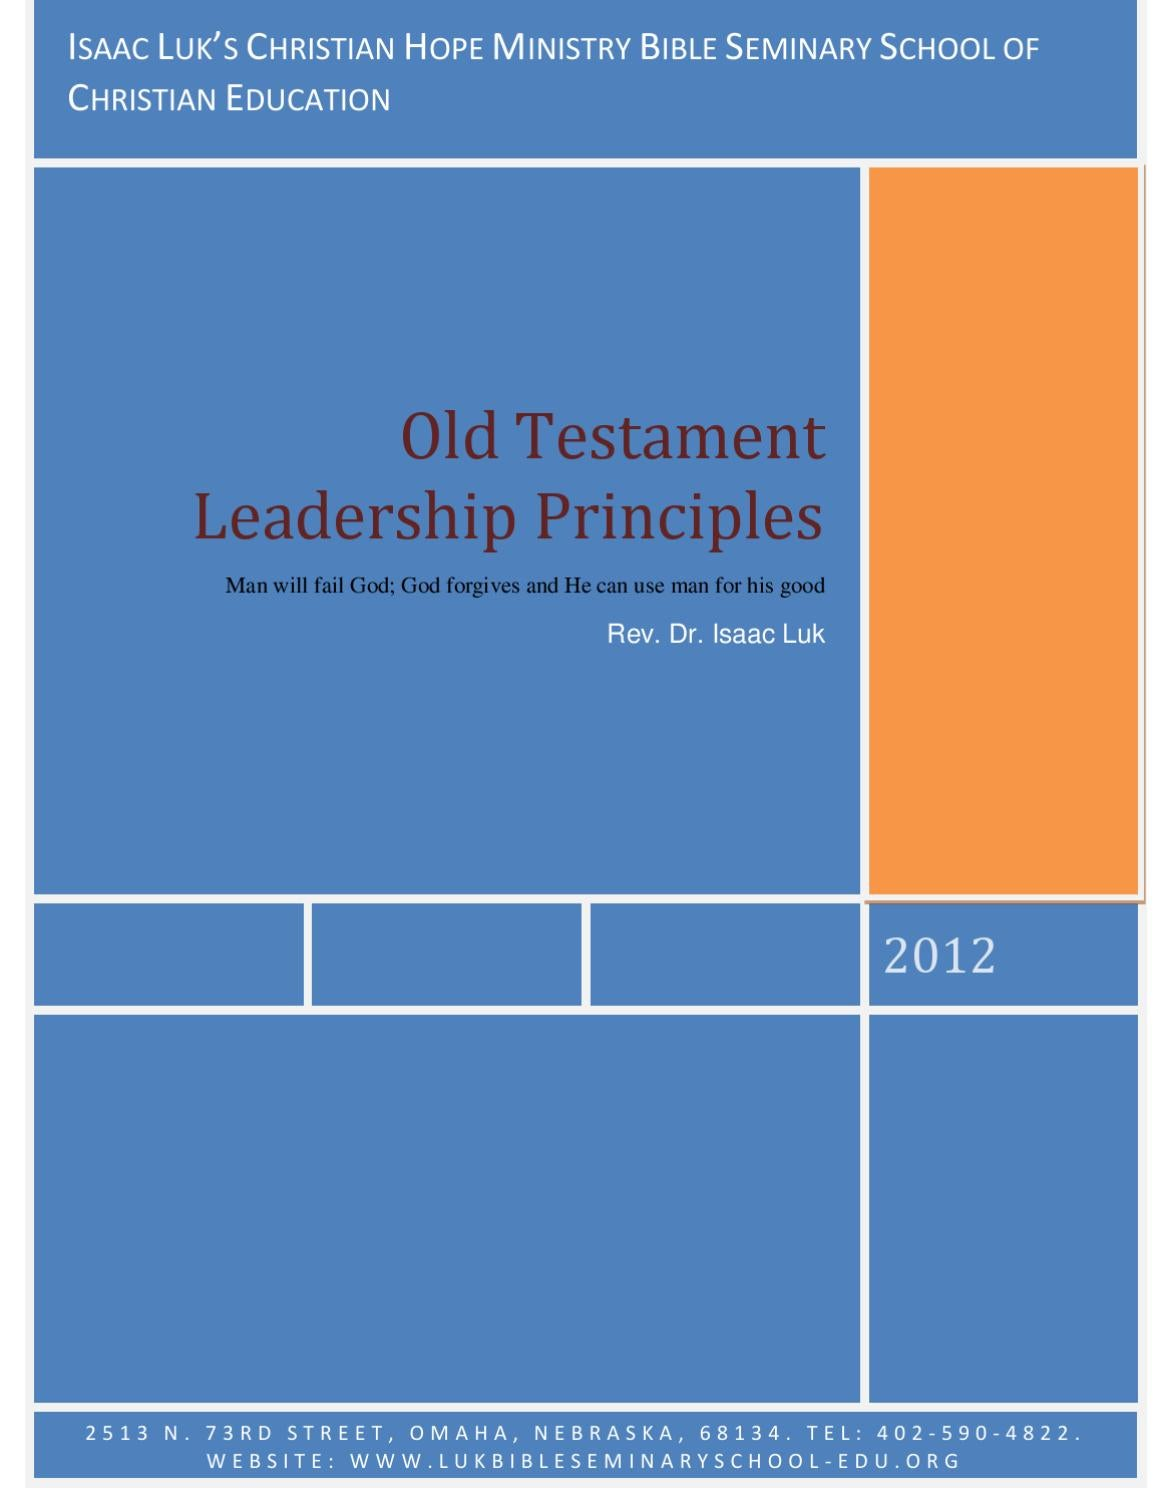 new testament leadership principles cled 510 Perhaps here we should paraphrase john, suggesting that if every leadership  principle available in the gospels or in acts were written down, the whole world.